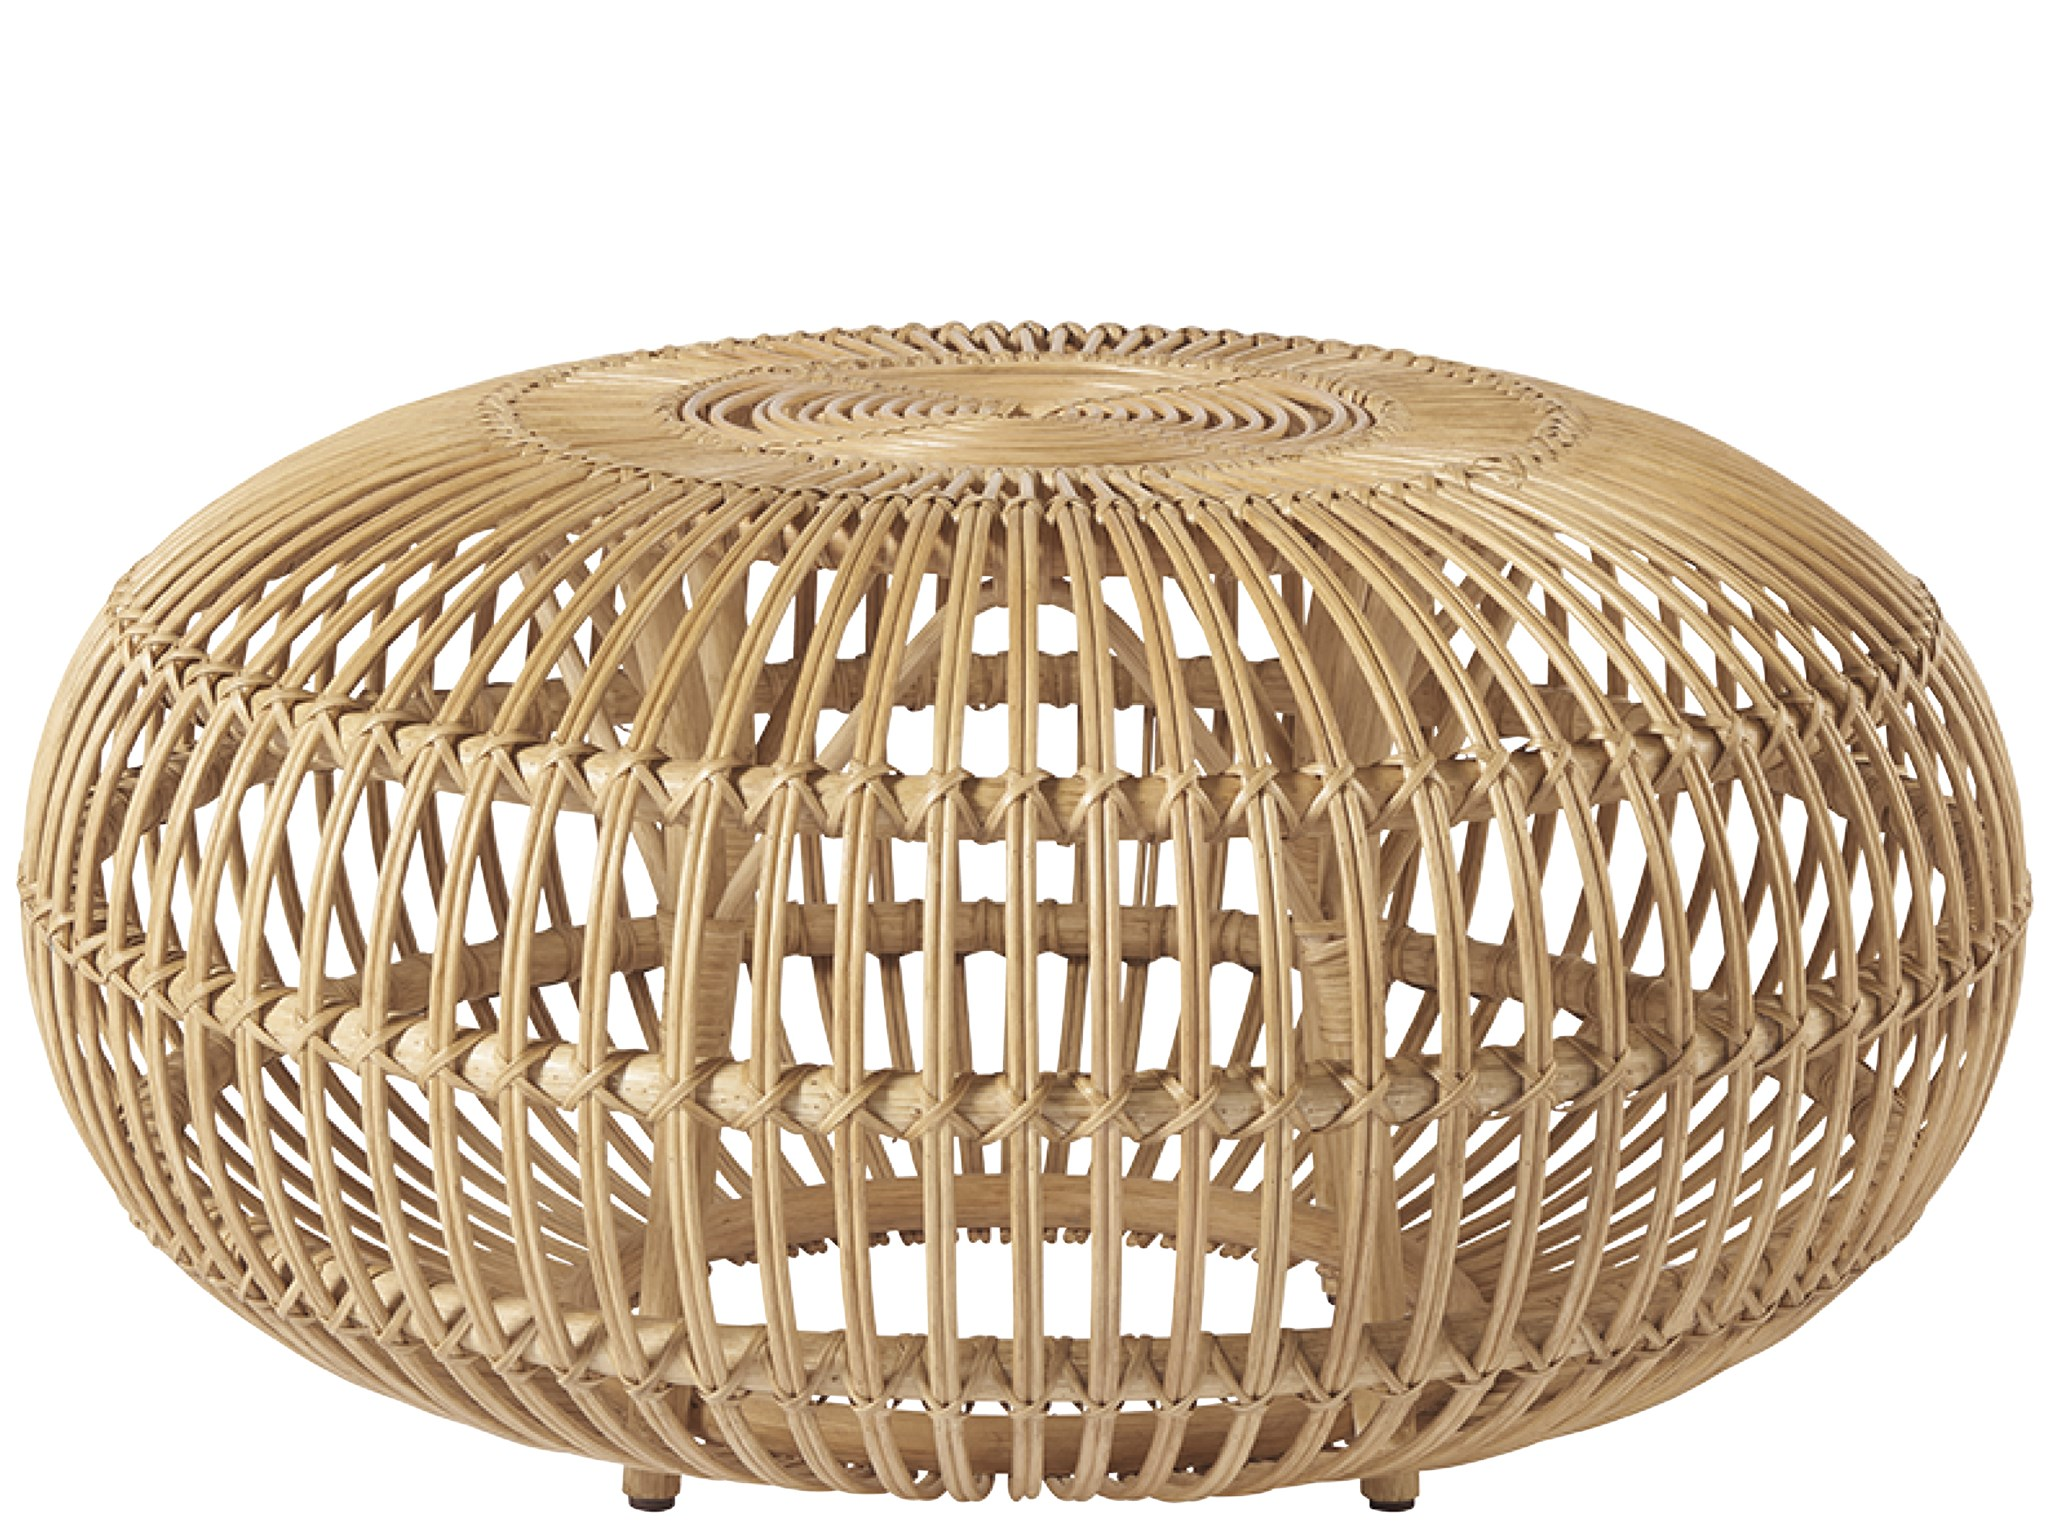 Rattan Table Universal Furniture Escape Coastal Living Home Collection